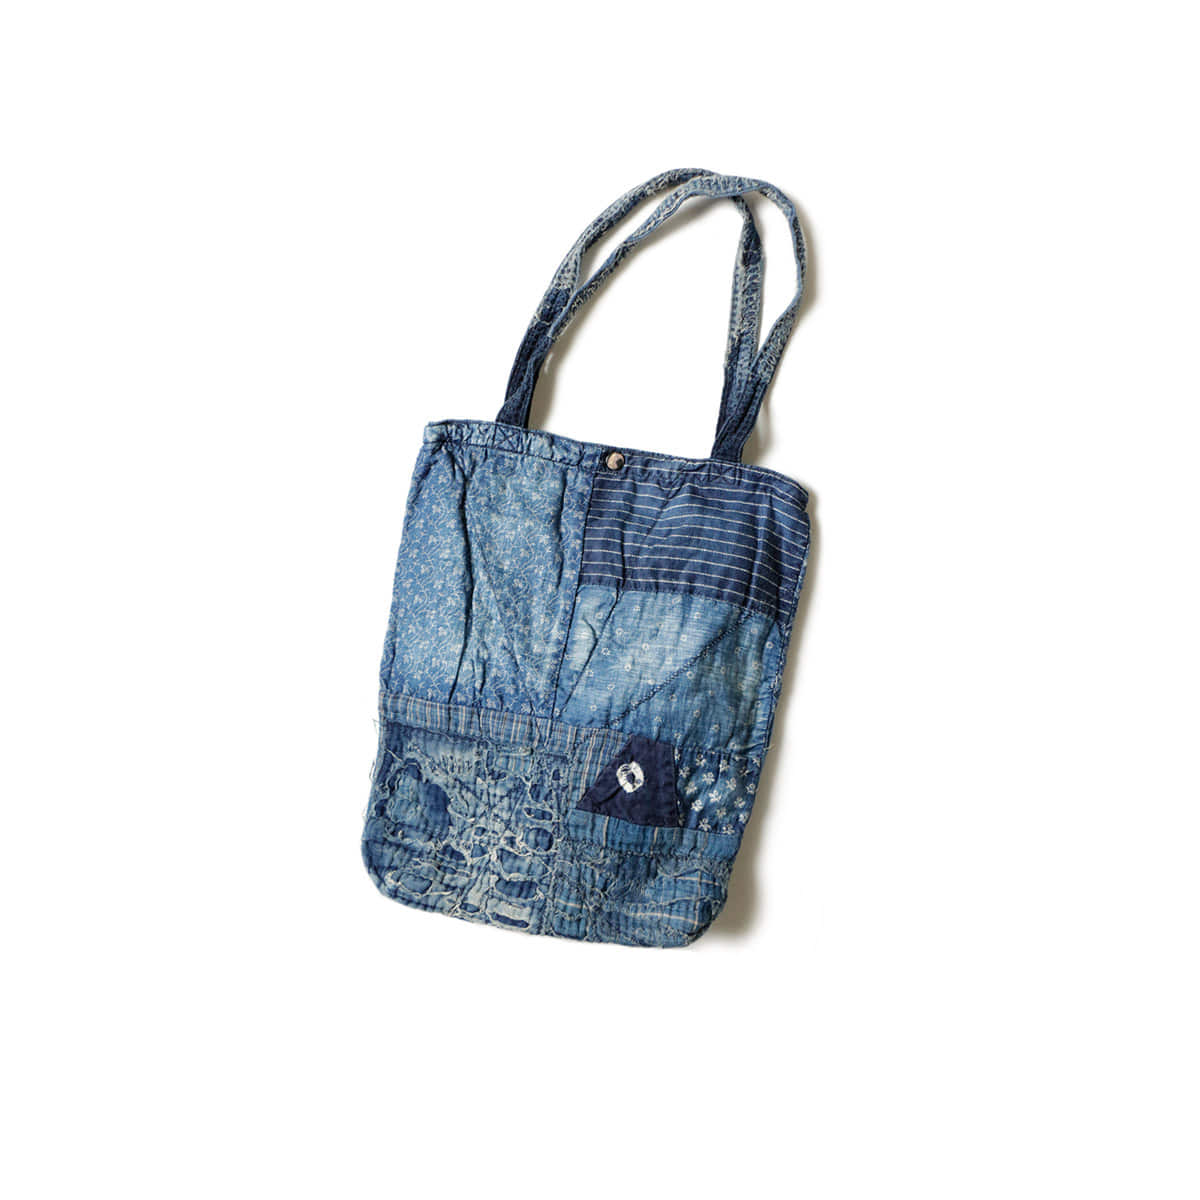 [KAPITAL] DENIM PATCHWORK TOTE BAG 'INDGO'